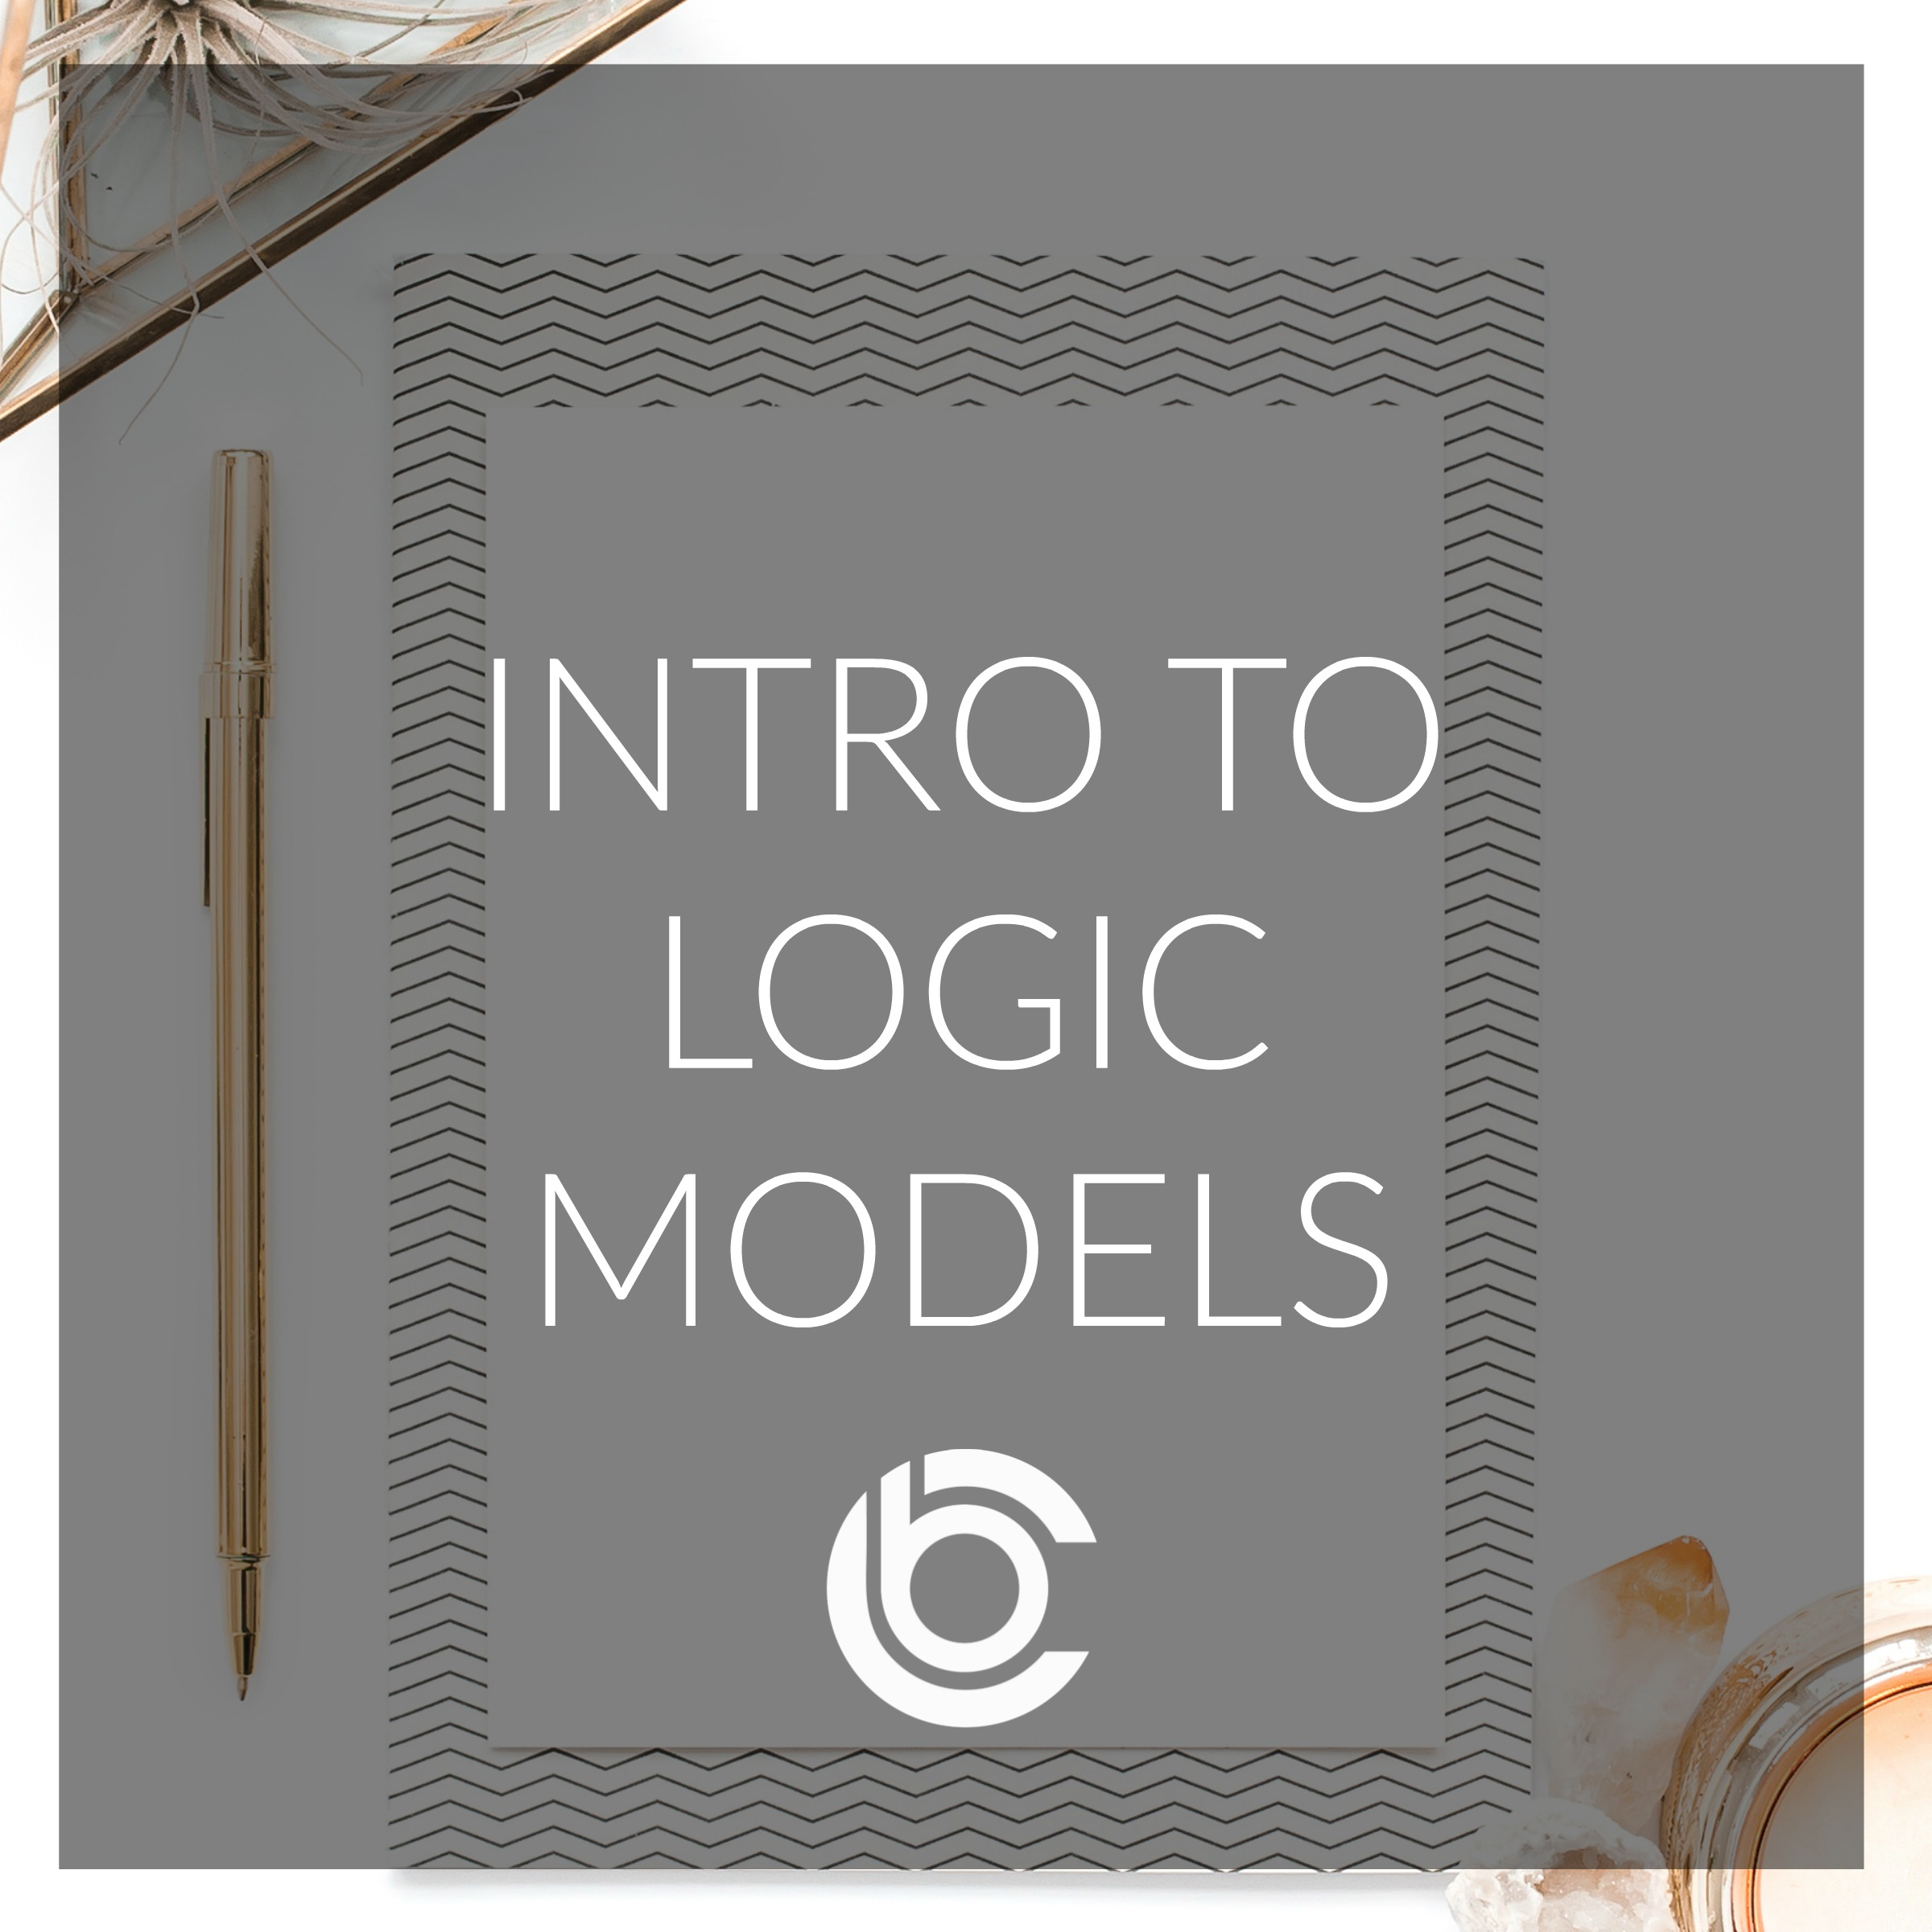 Logic Models Intro.jpg